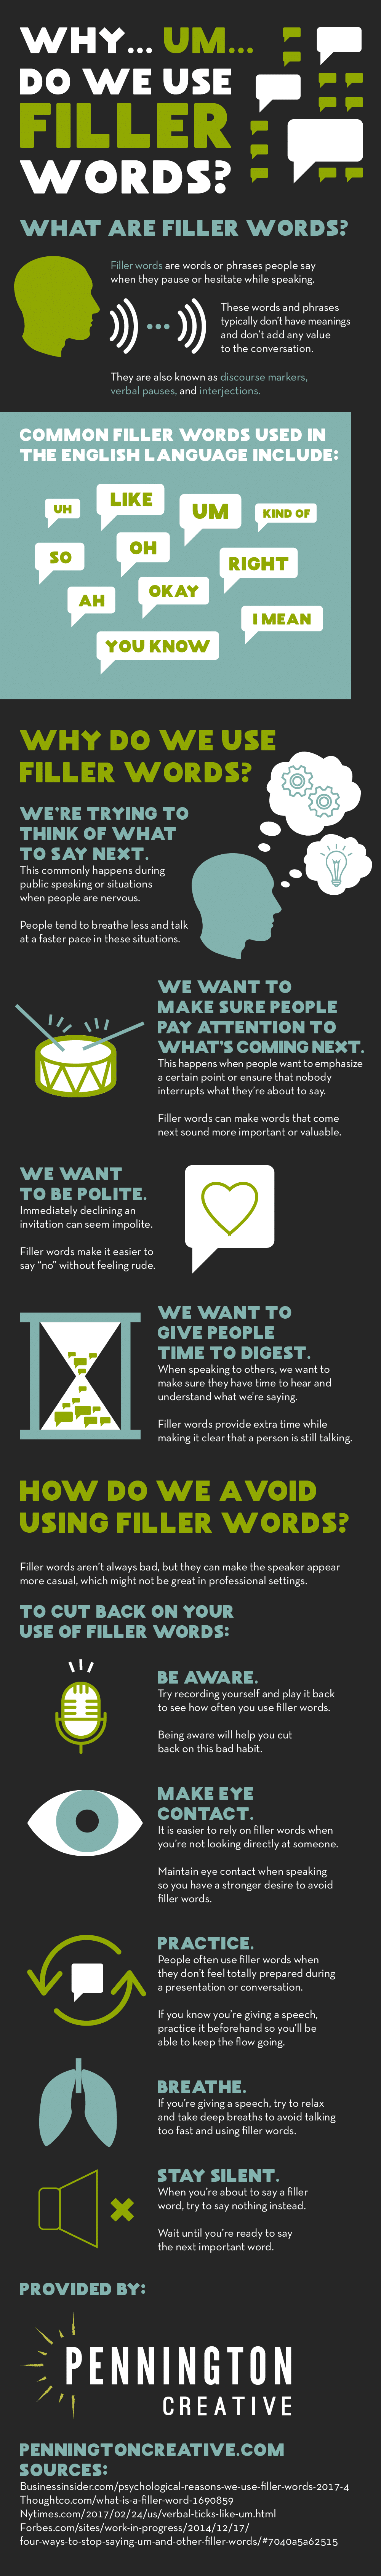 Infographic about filler words and how to avoid using them.